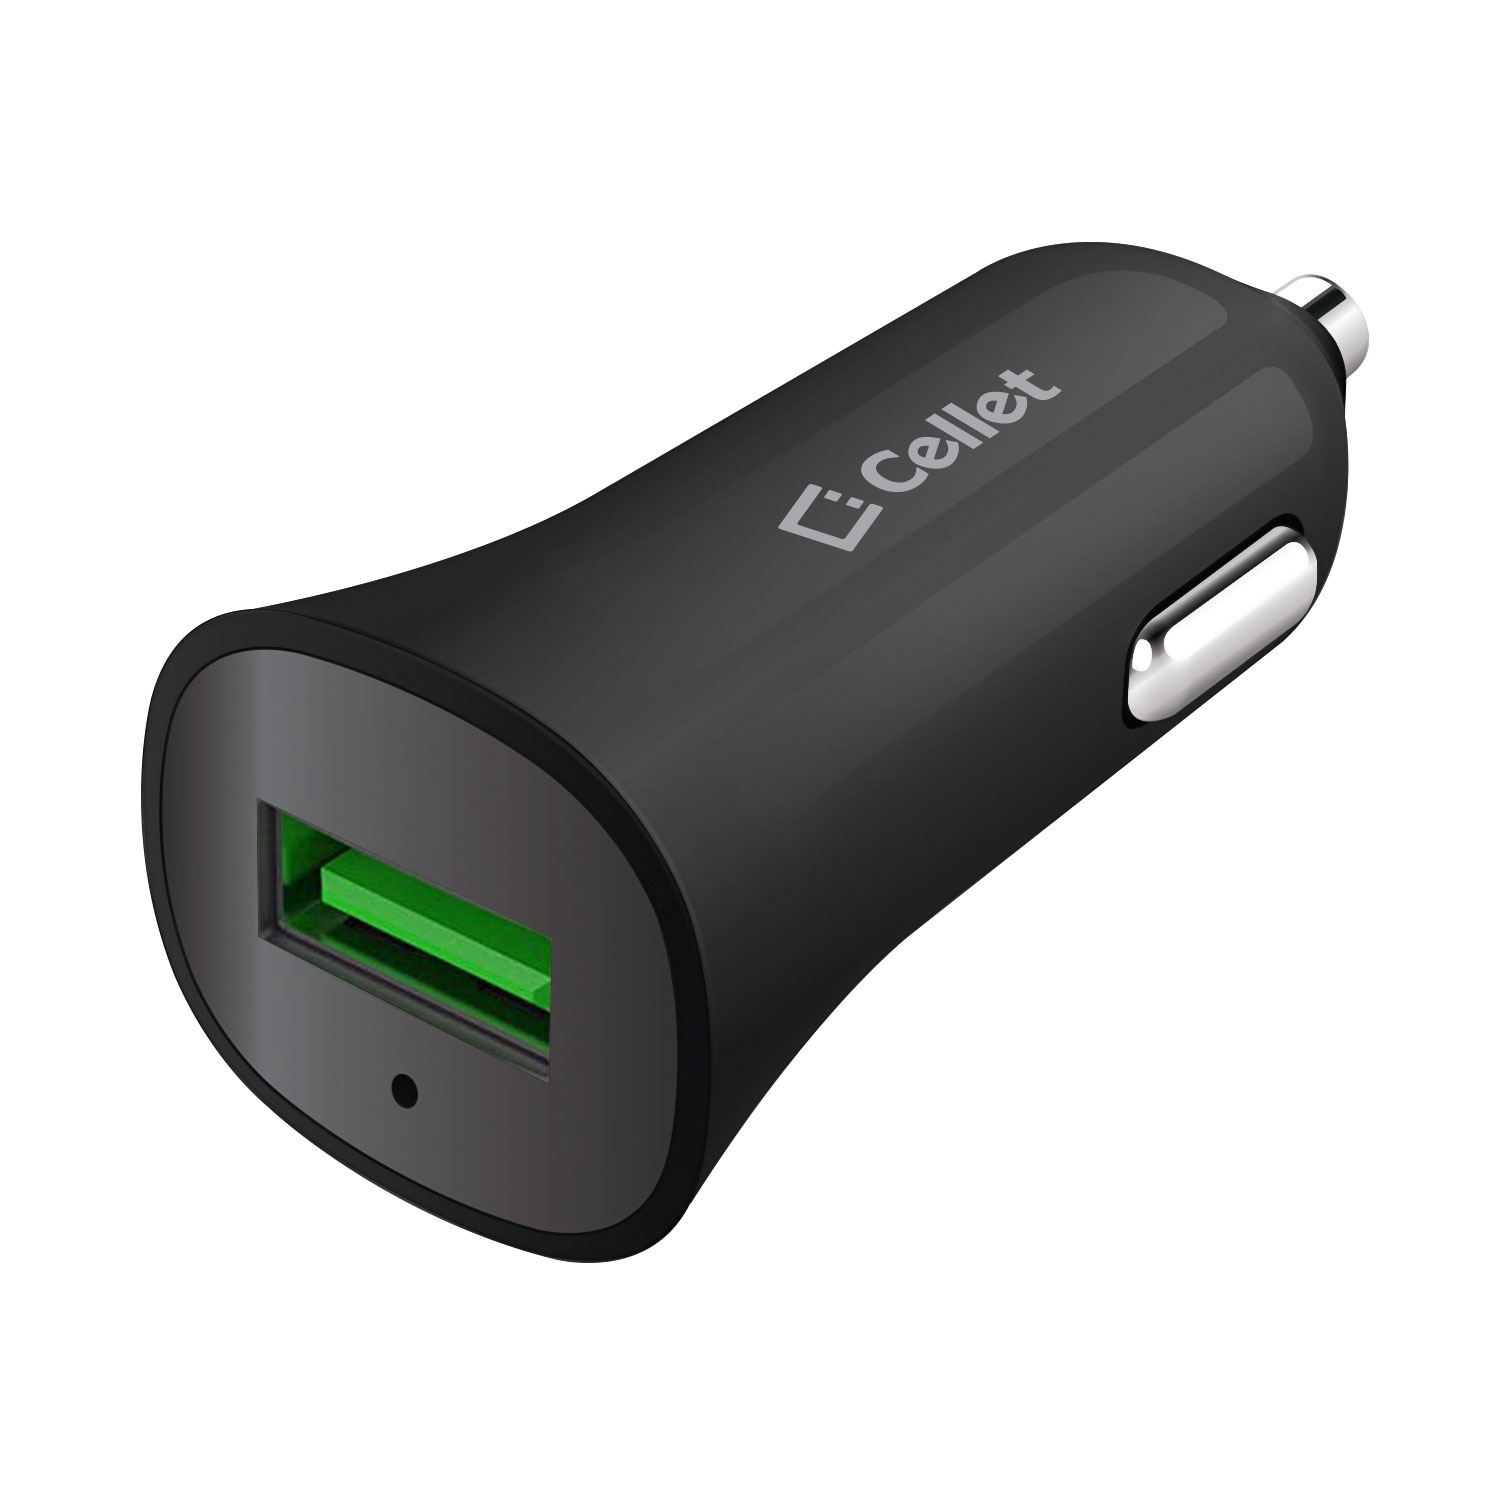 LG Rumor2 (UX-265 Banter) Car Charger Quick Charge 3.0 Black 3.3ft